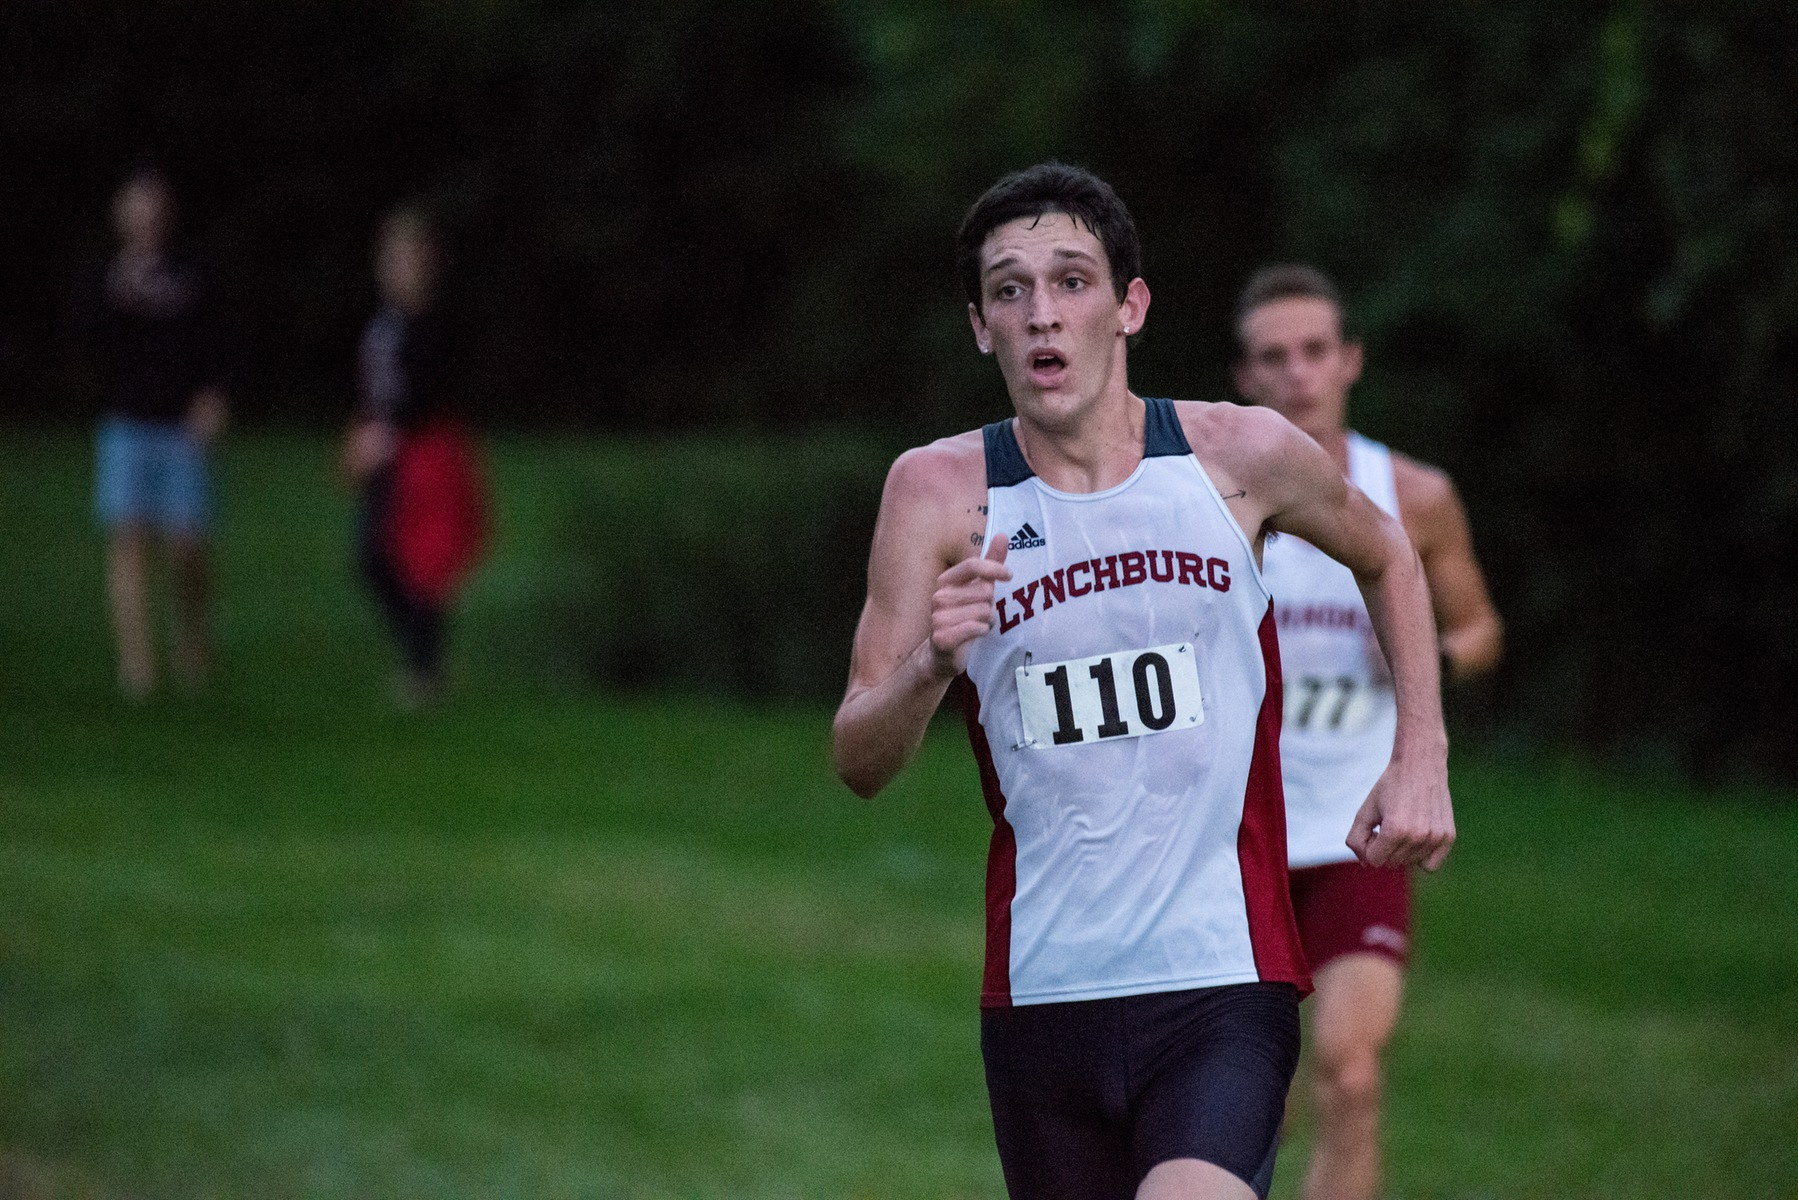 Andrew Johnson running in a cross country race